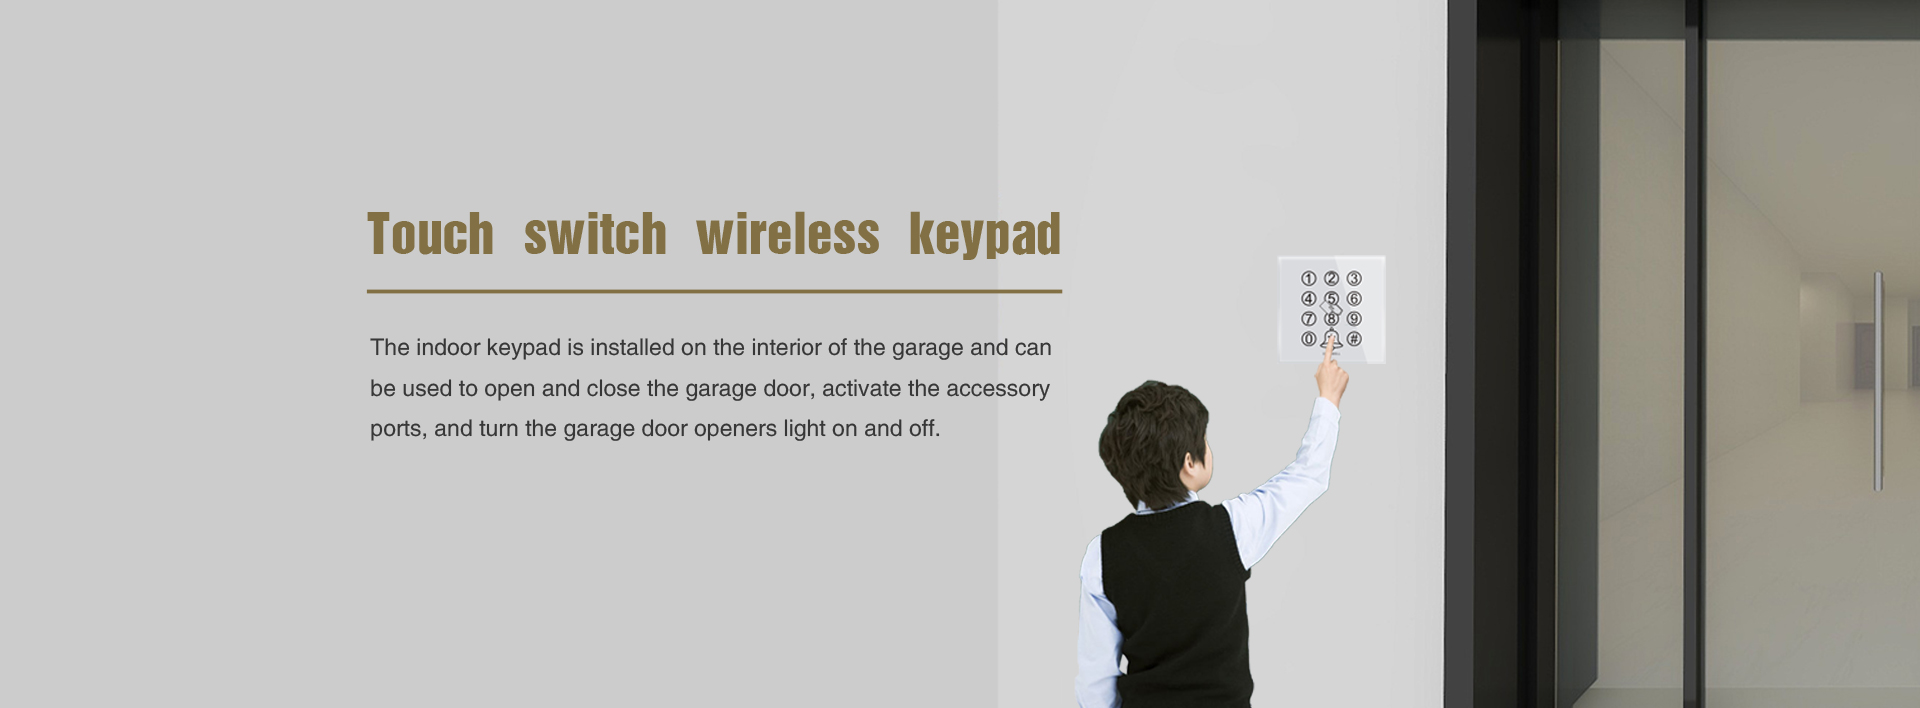 Touch switch wireless keypad